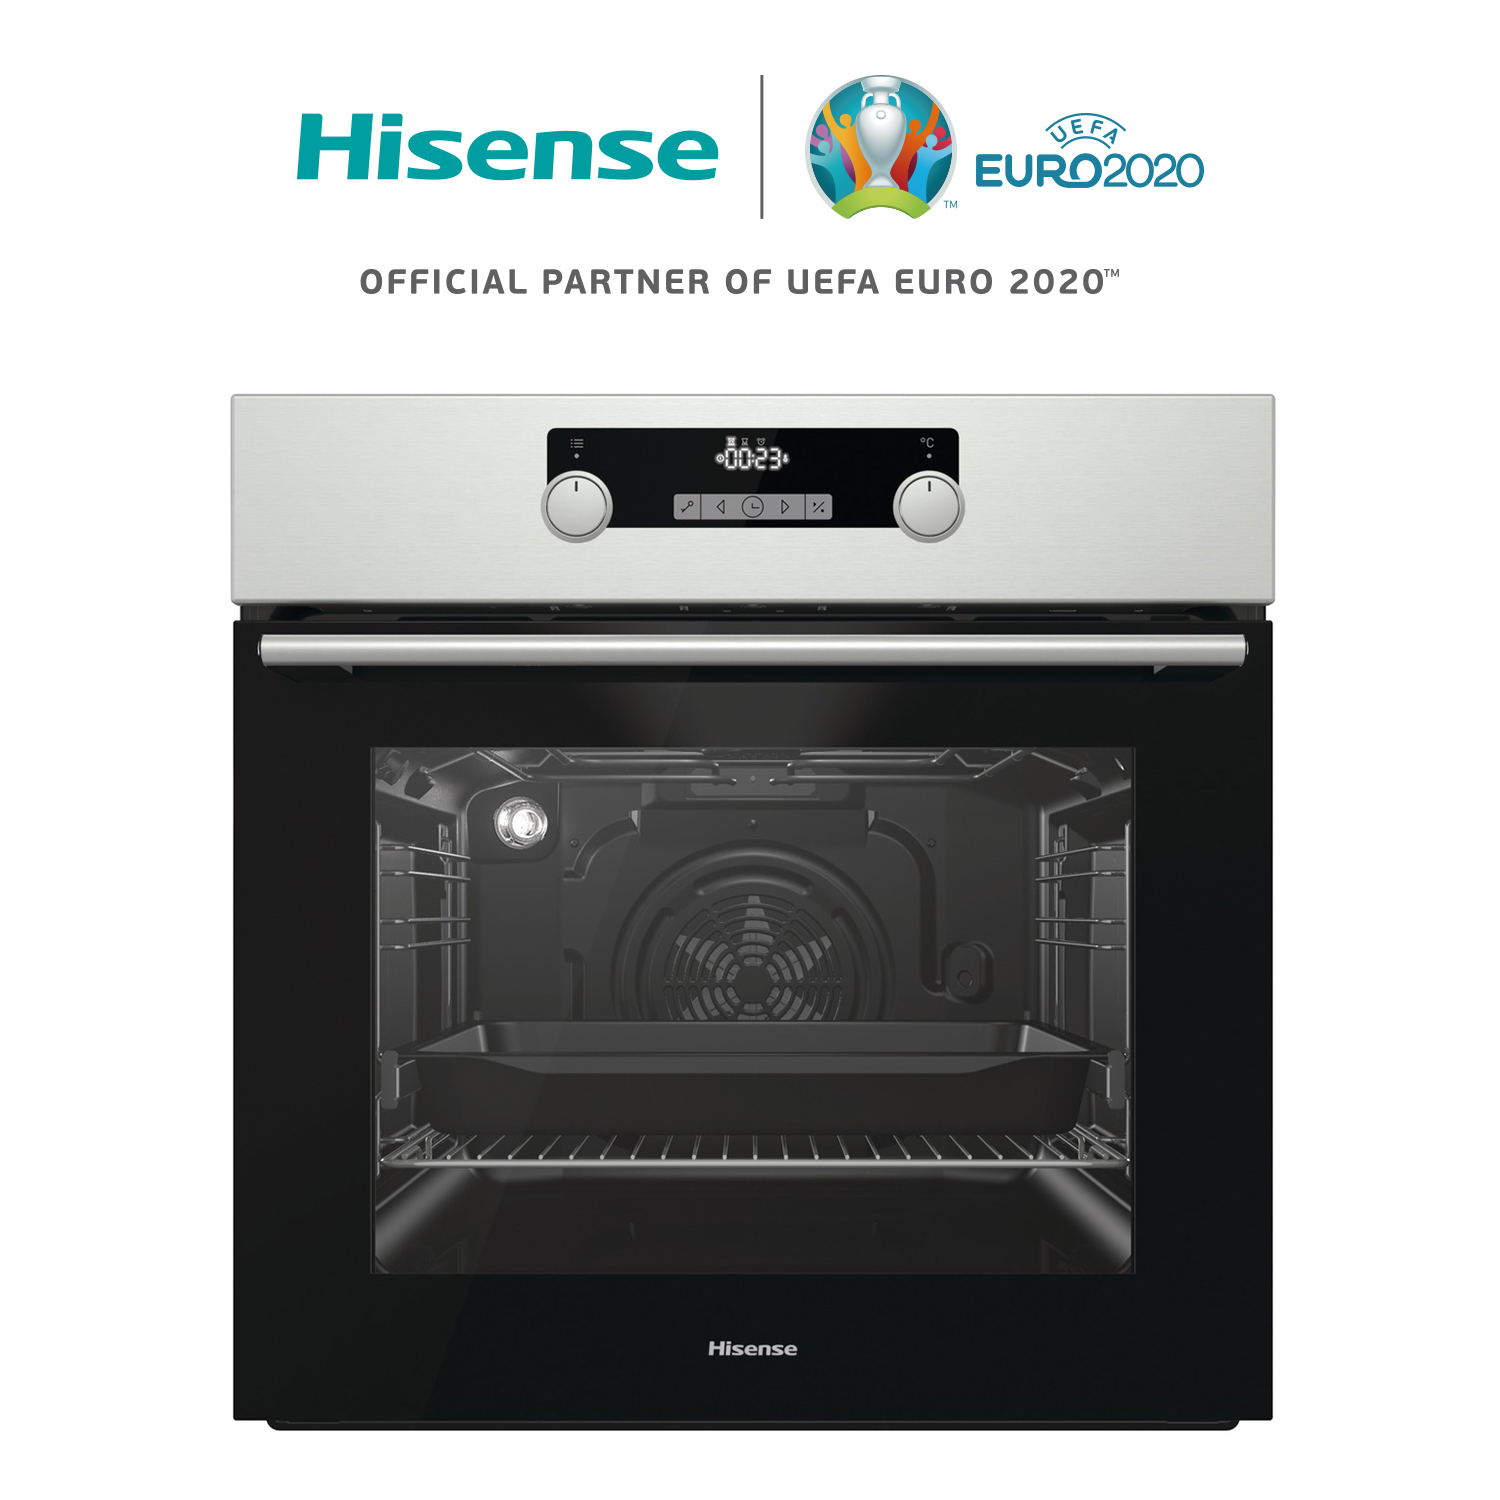 Hisense O522AX Oven recessed, Easy To clean, LED Display icon, 3300W, 71L, stainless steel, 59,7 × 59,5 × 54,7 cm